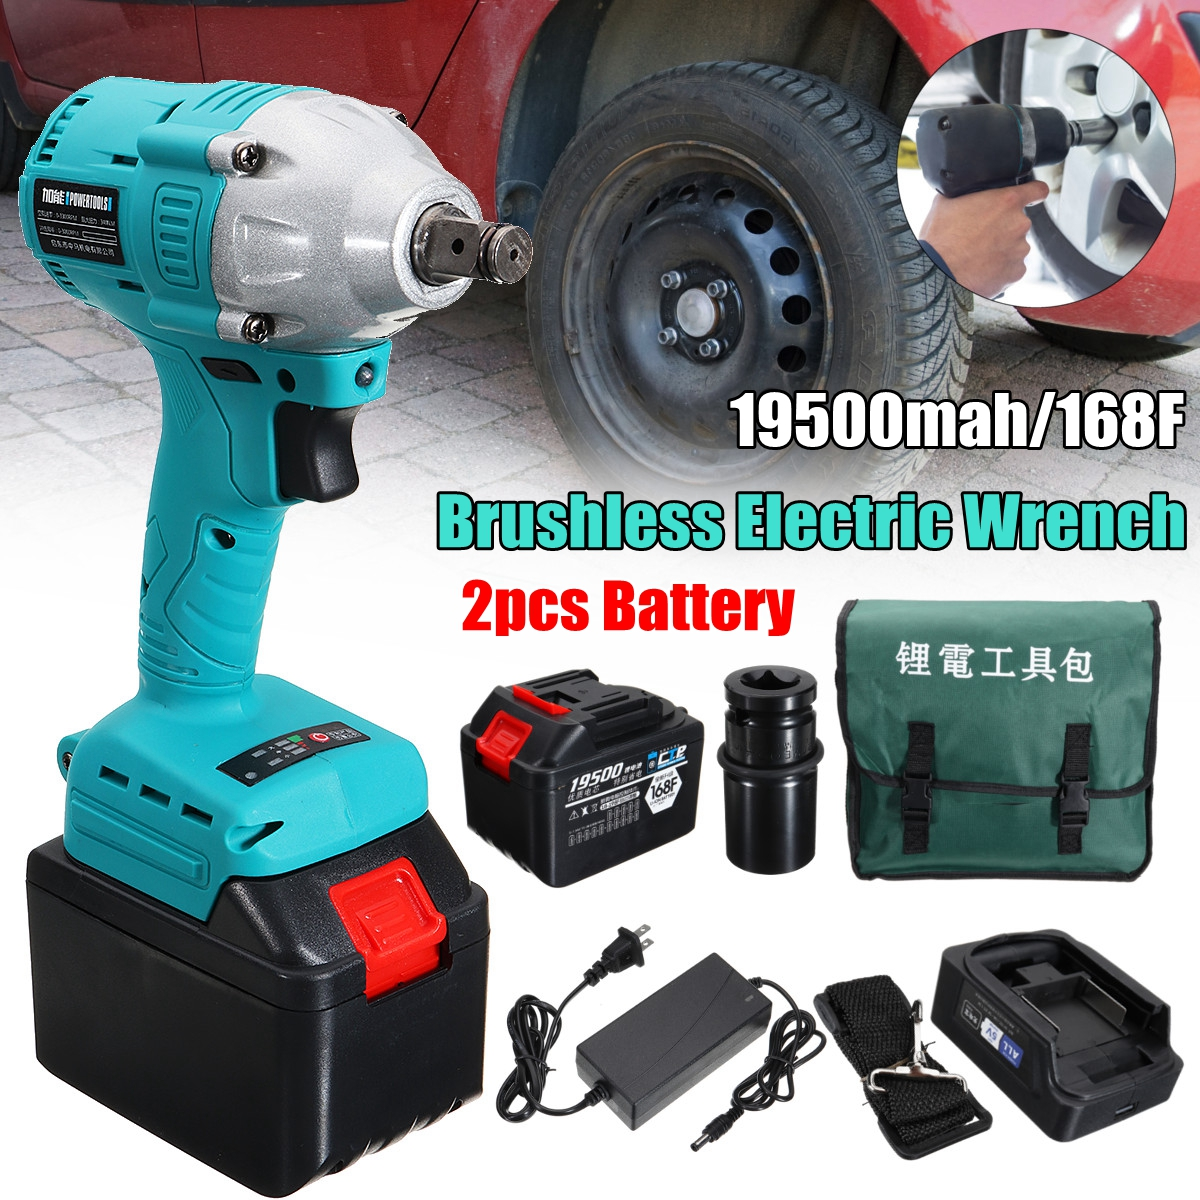 350Nm torque Brushless Electric Impact Wrench Cordless Rechargeable Lithium Battery Hand Drill Installation Power Tool tenwa20v brushless electric impact wrench cordless rechargeable lithium battery socket impact digital electric wrench